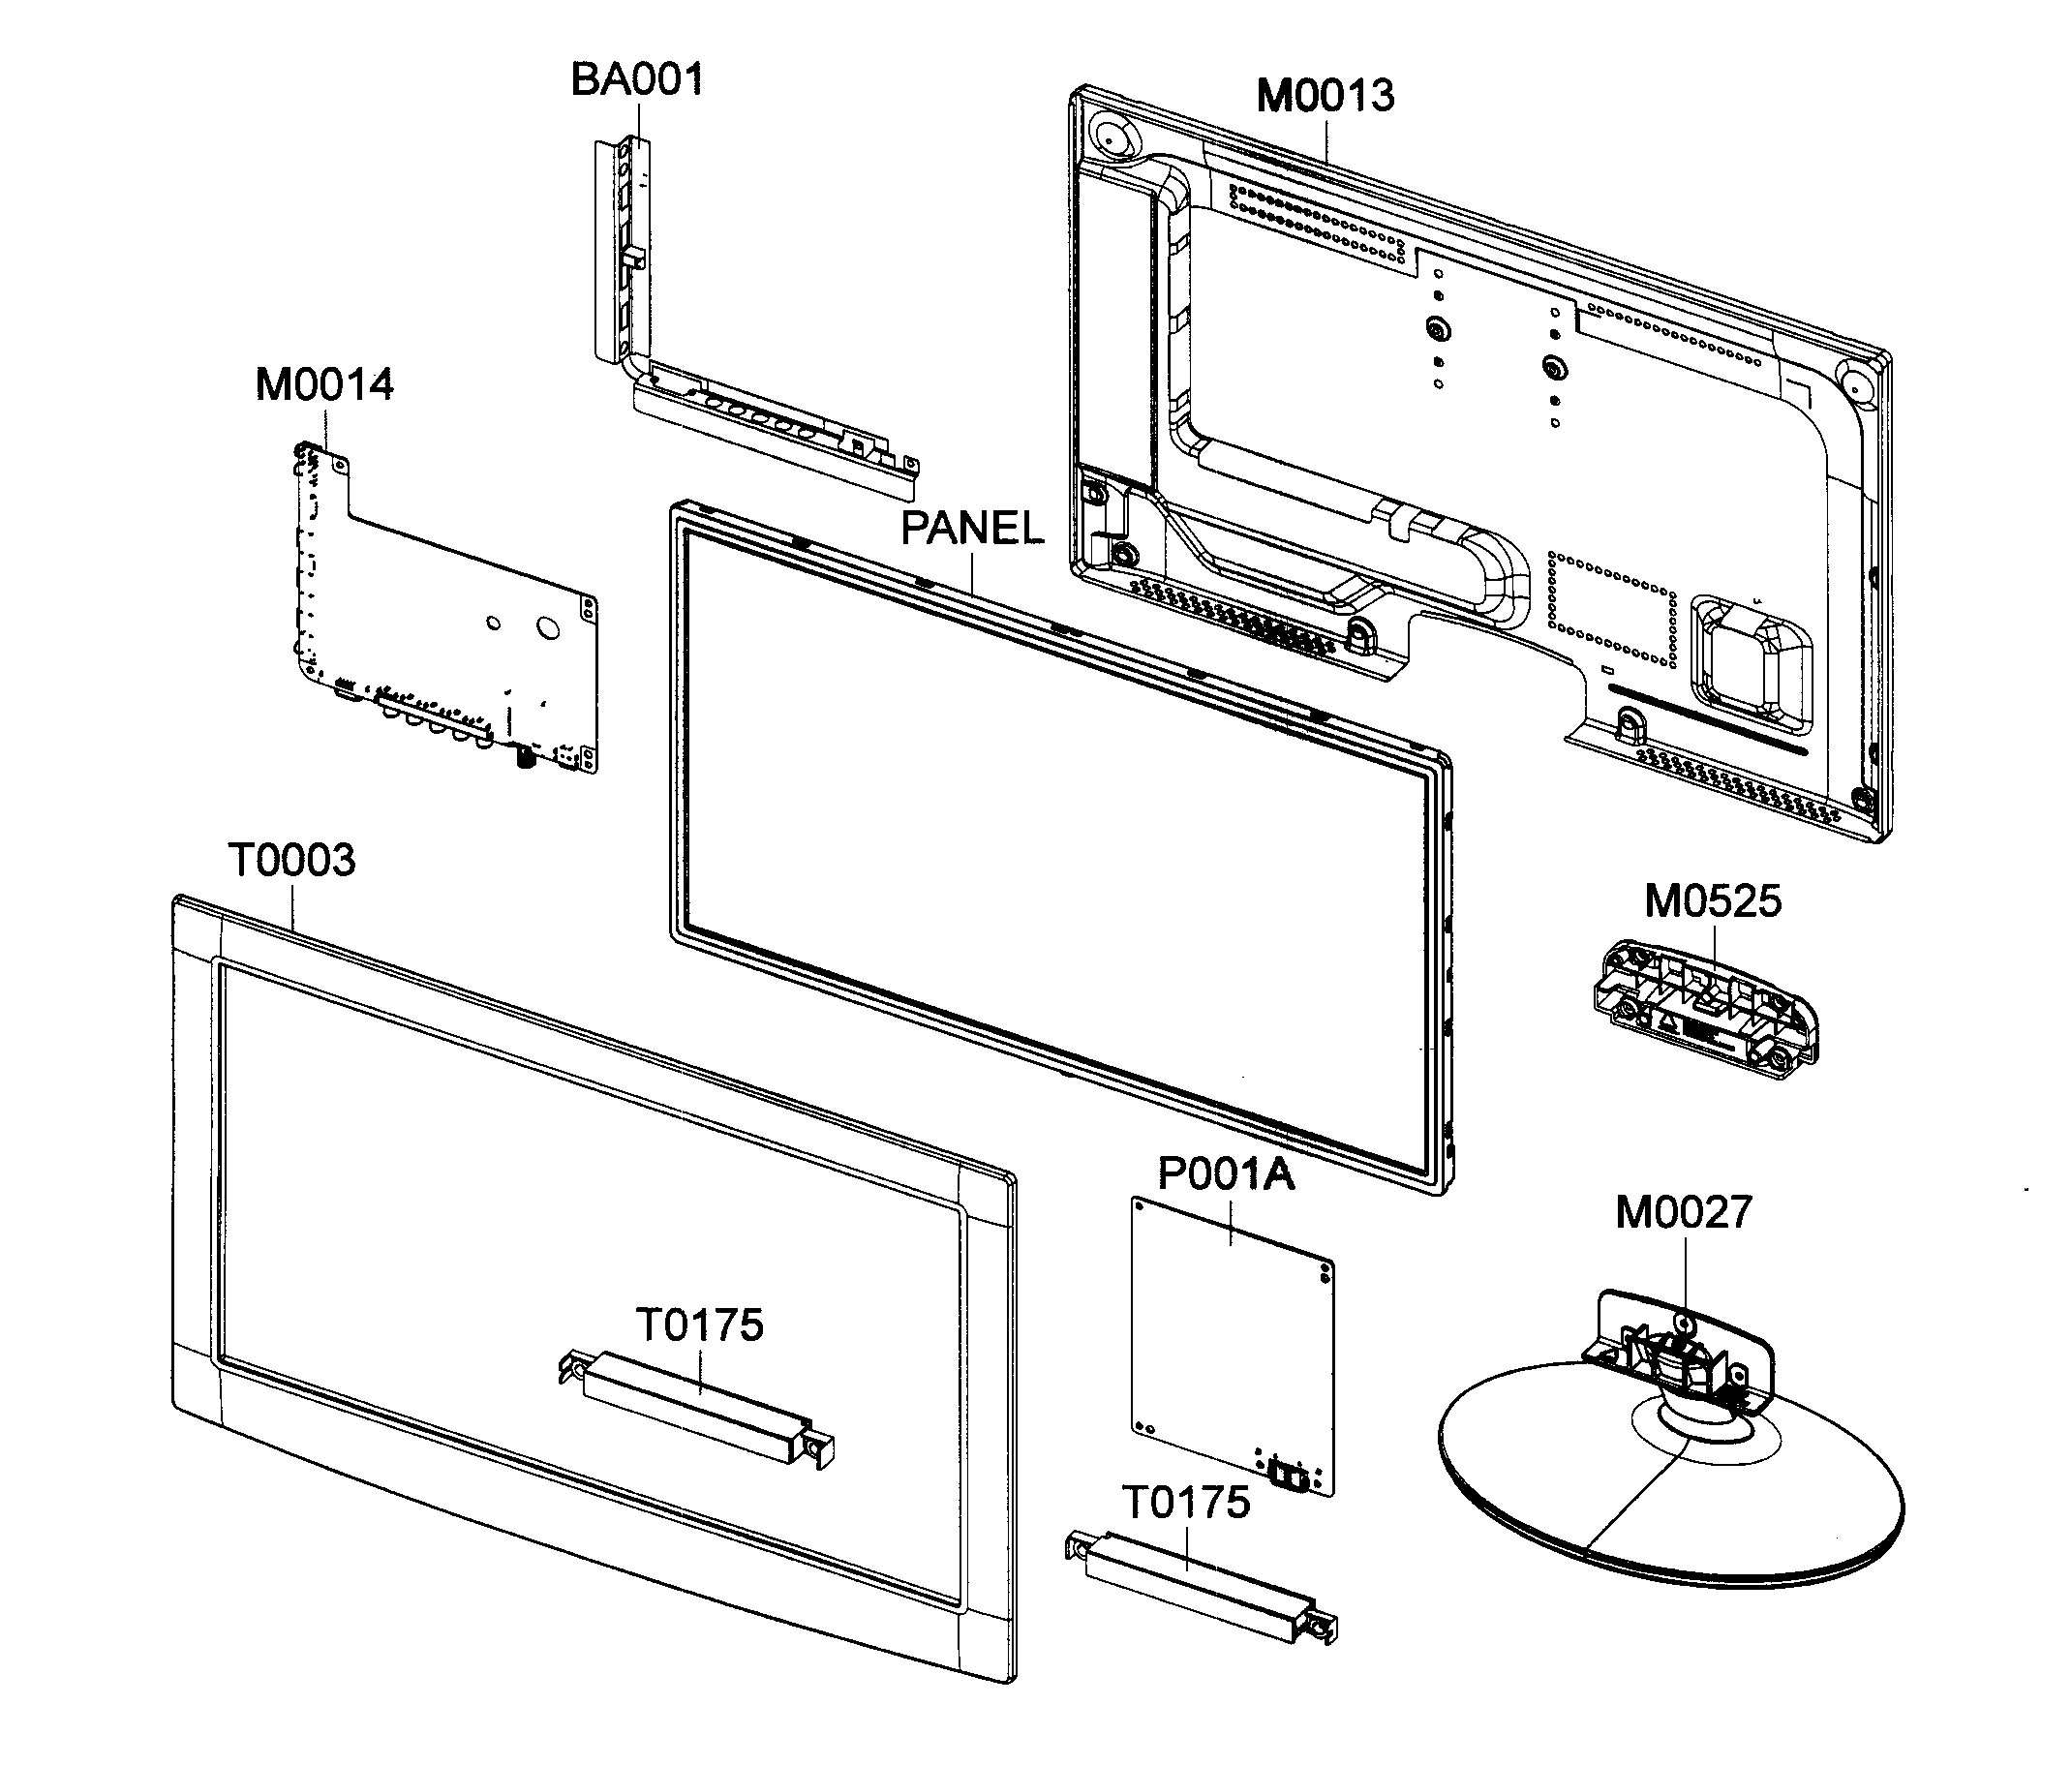 [DIAGRAM] Wiring Diagram Samsung Tv Laste Ned Diagram